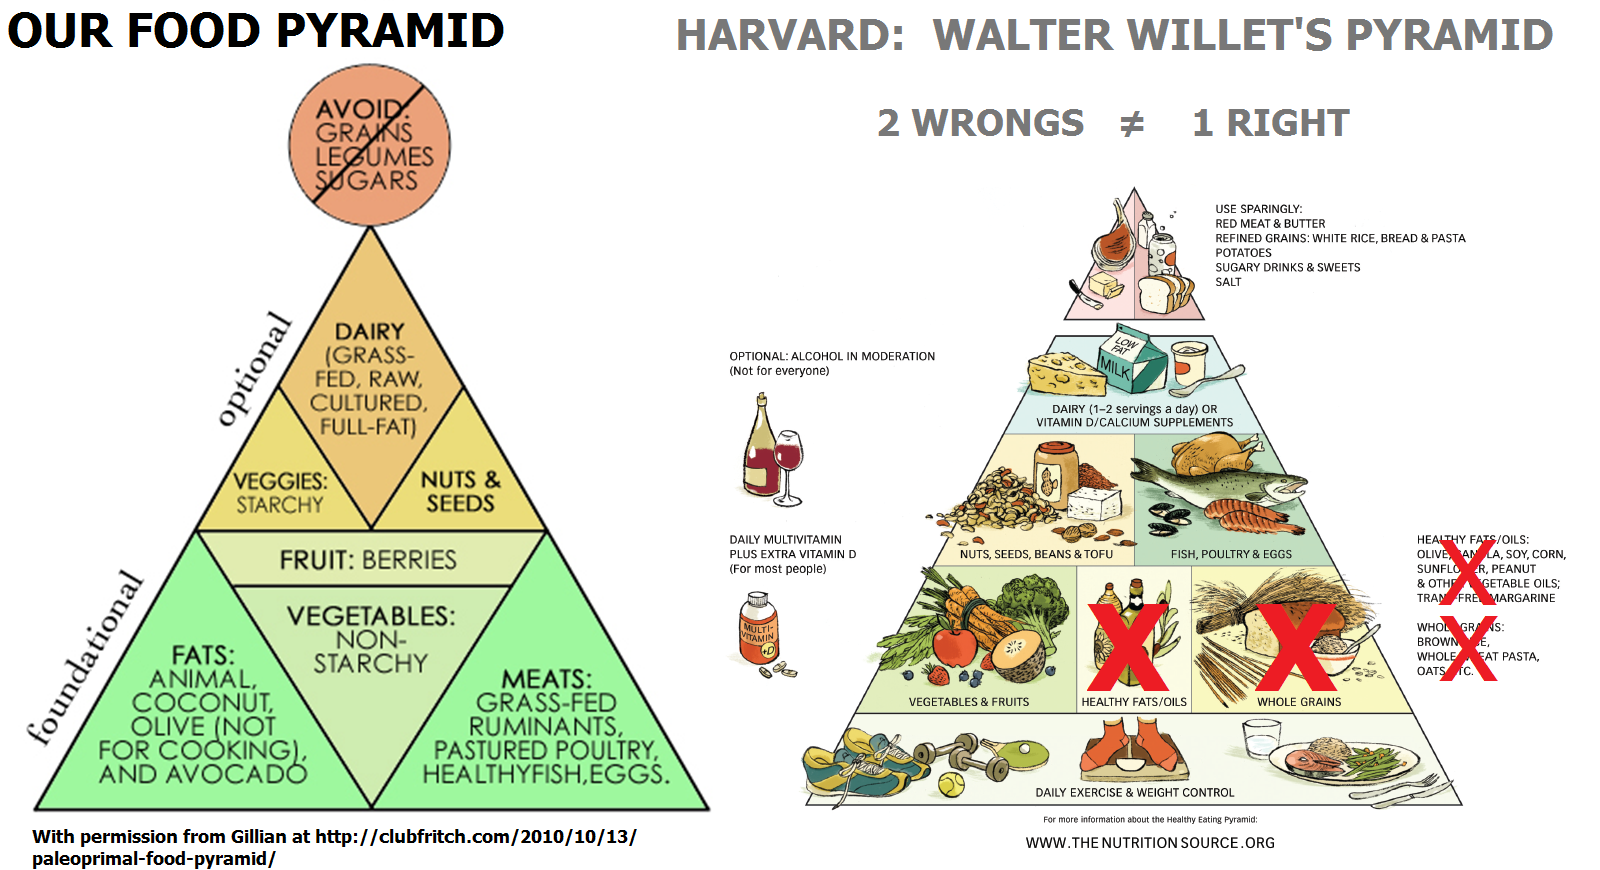 food pyramid 2 essay Sample essay topic, essay writing: the food guide pyramid is good - 994 words the food guide pyramid plays an important role in the health education of the.